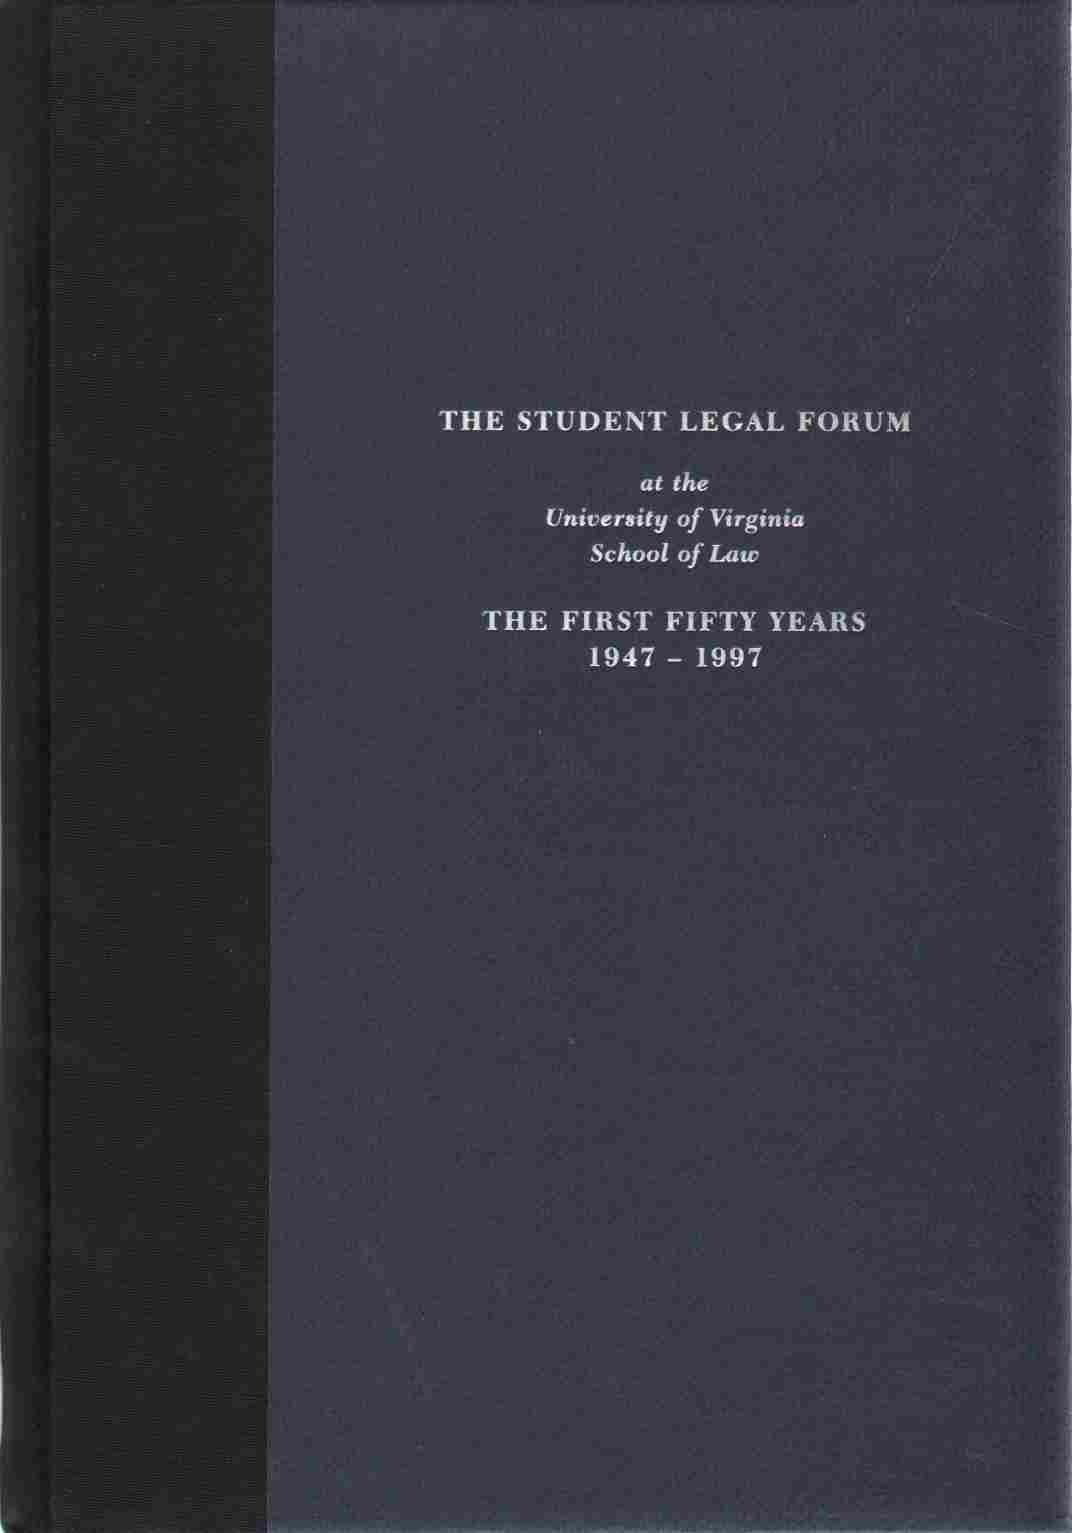 Image for THE STUDENT LEGAL FORUM AT THE UNIVERSITY OF VIRGINIA SCHOOL OF LAW The First Fifty Years, 1947-1997